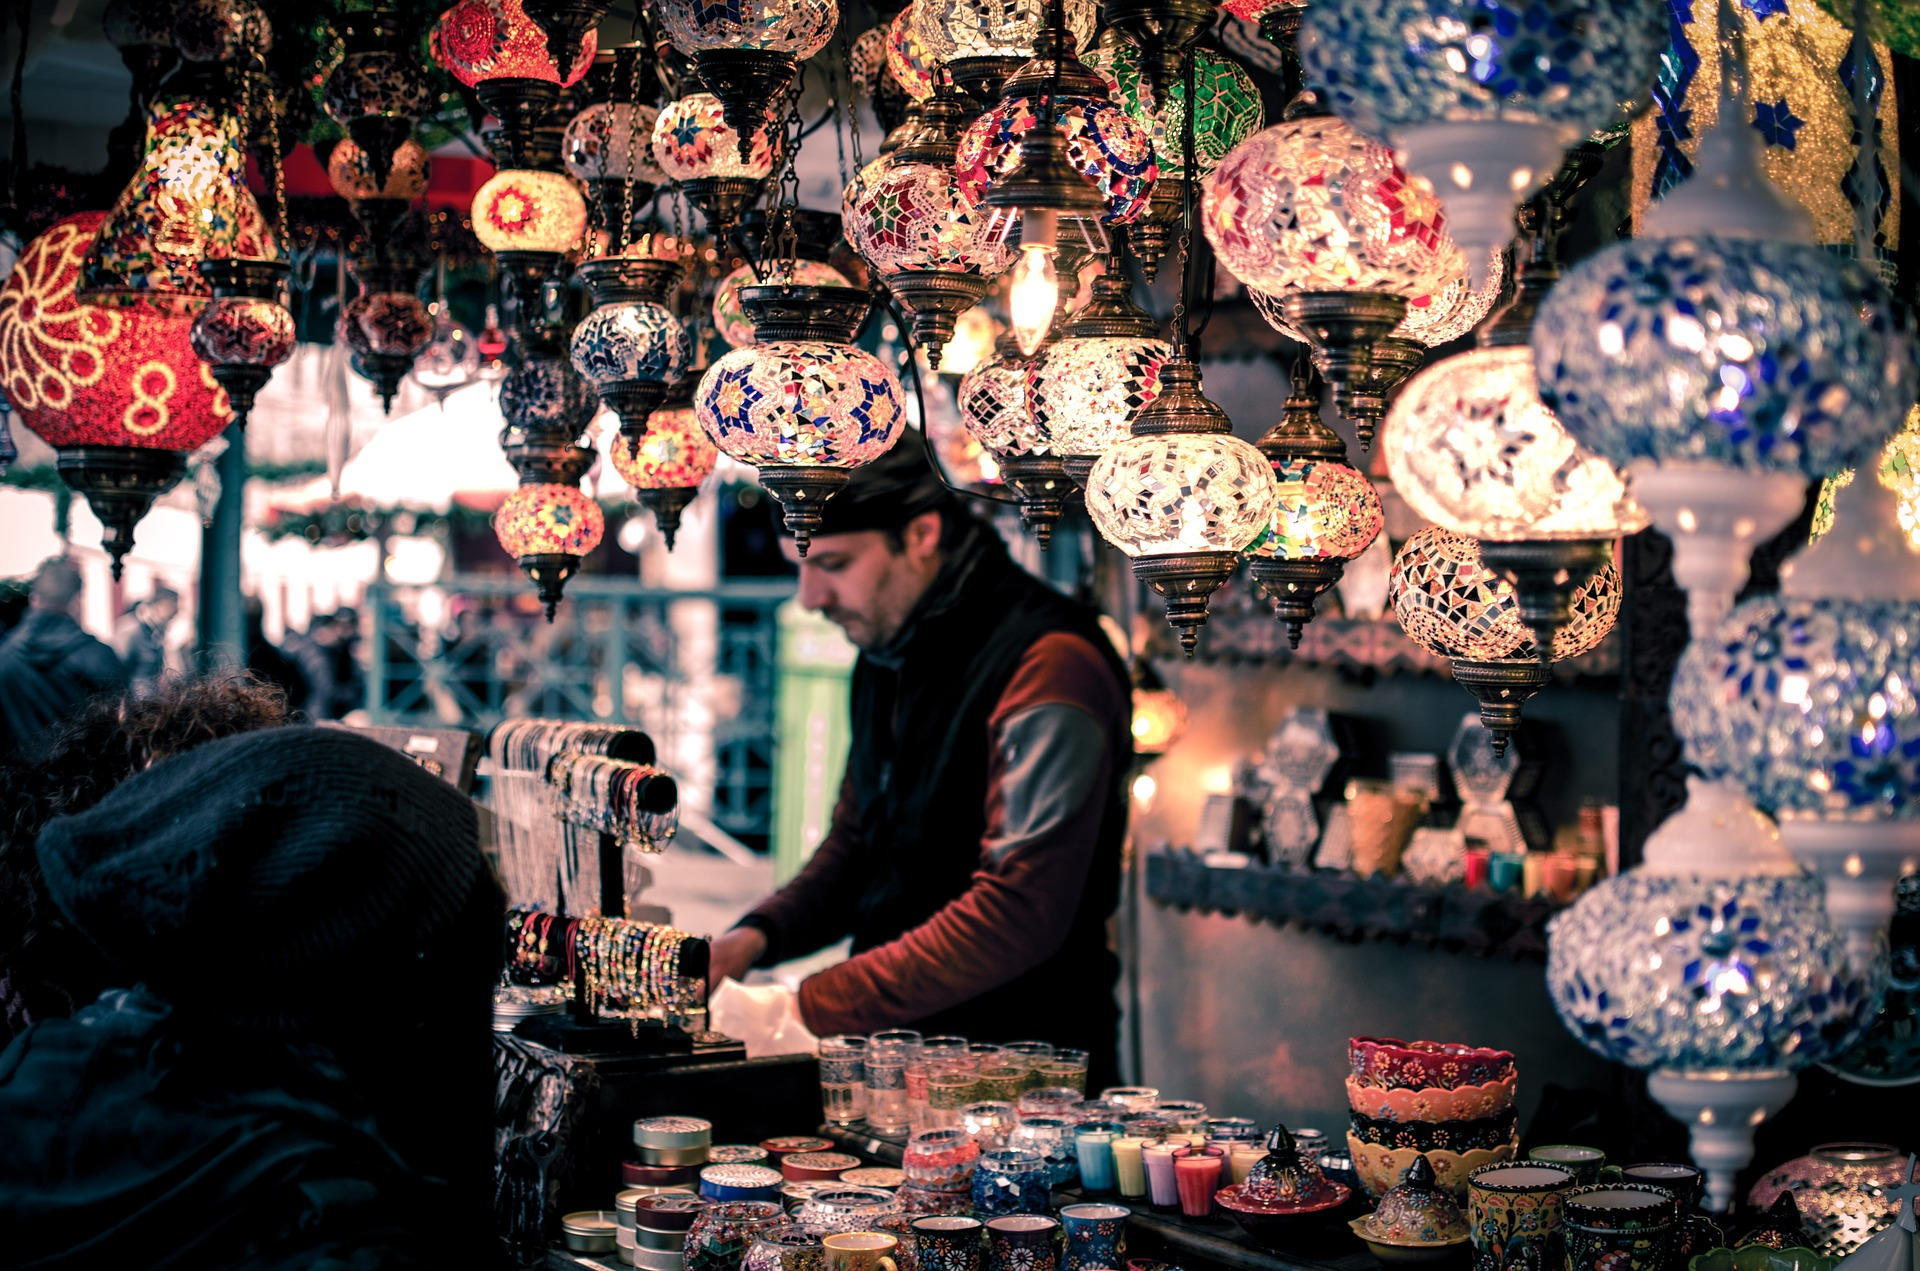 Shopping In Turkey: Top 10 Traditional Souvenirs To Buy Before You Leave